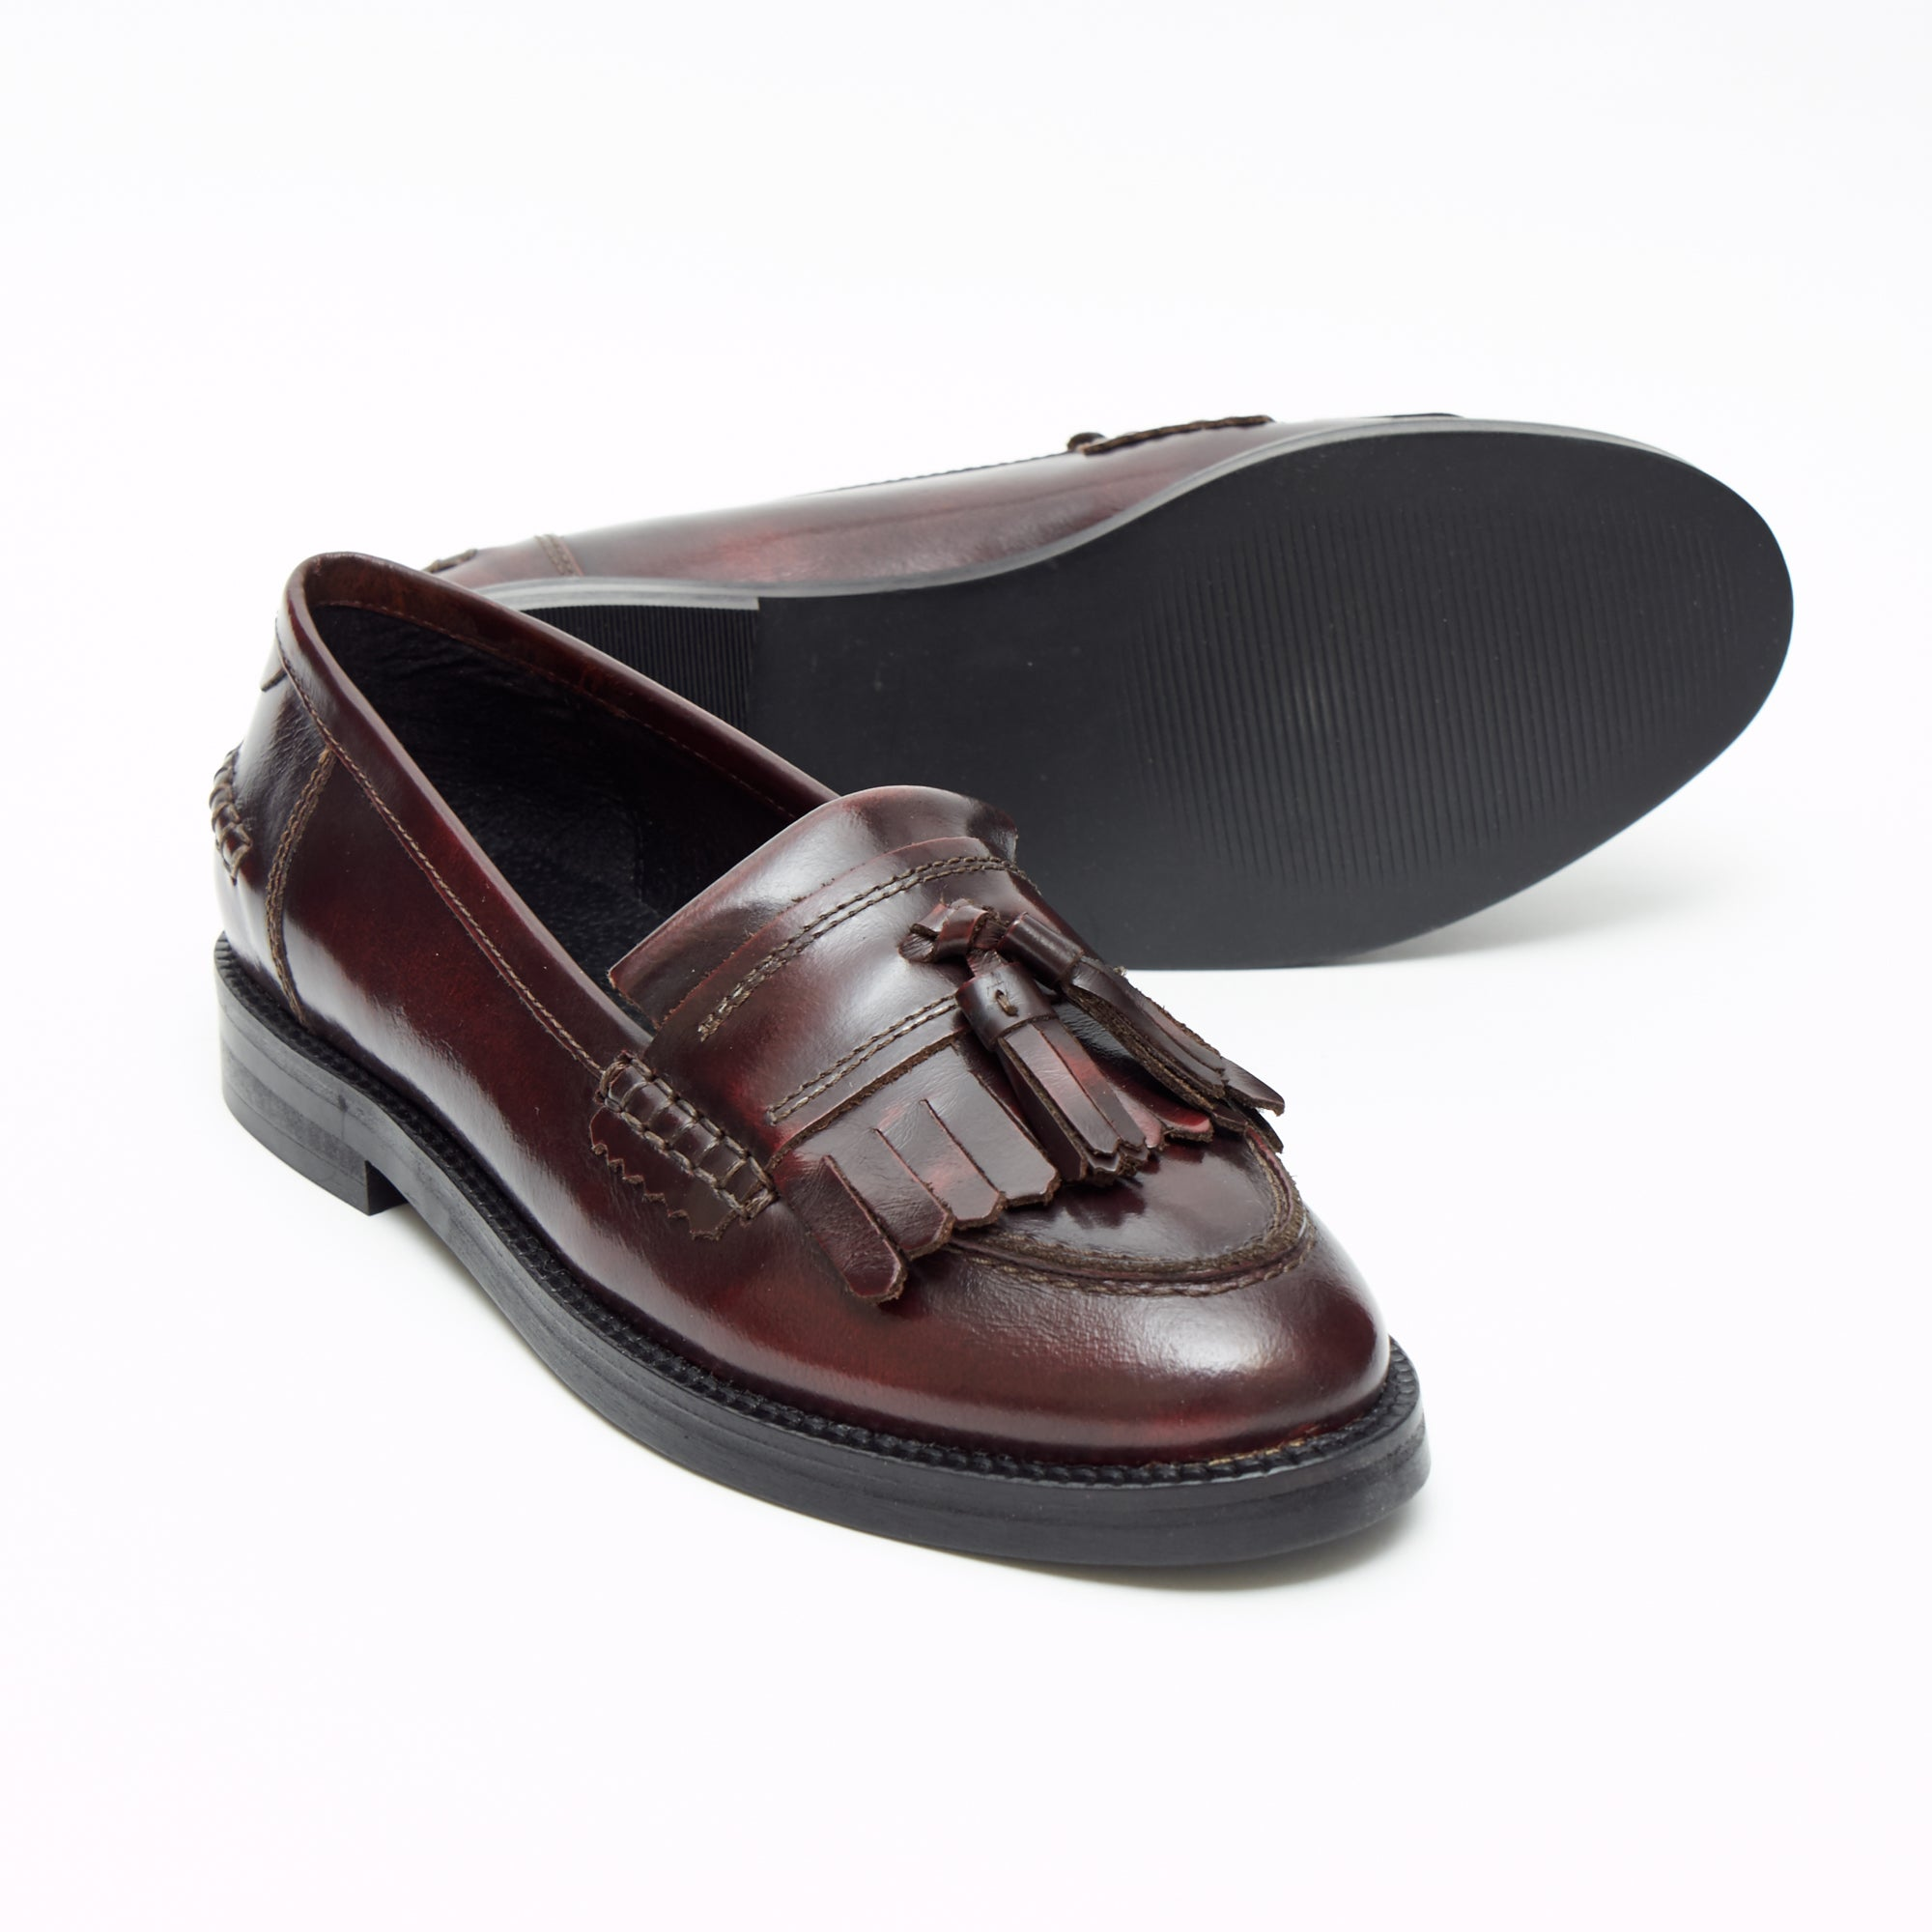 Ladies Flat Heel Loafer Shoes - R0830-1_Oxblood